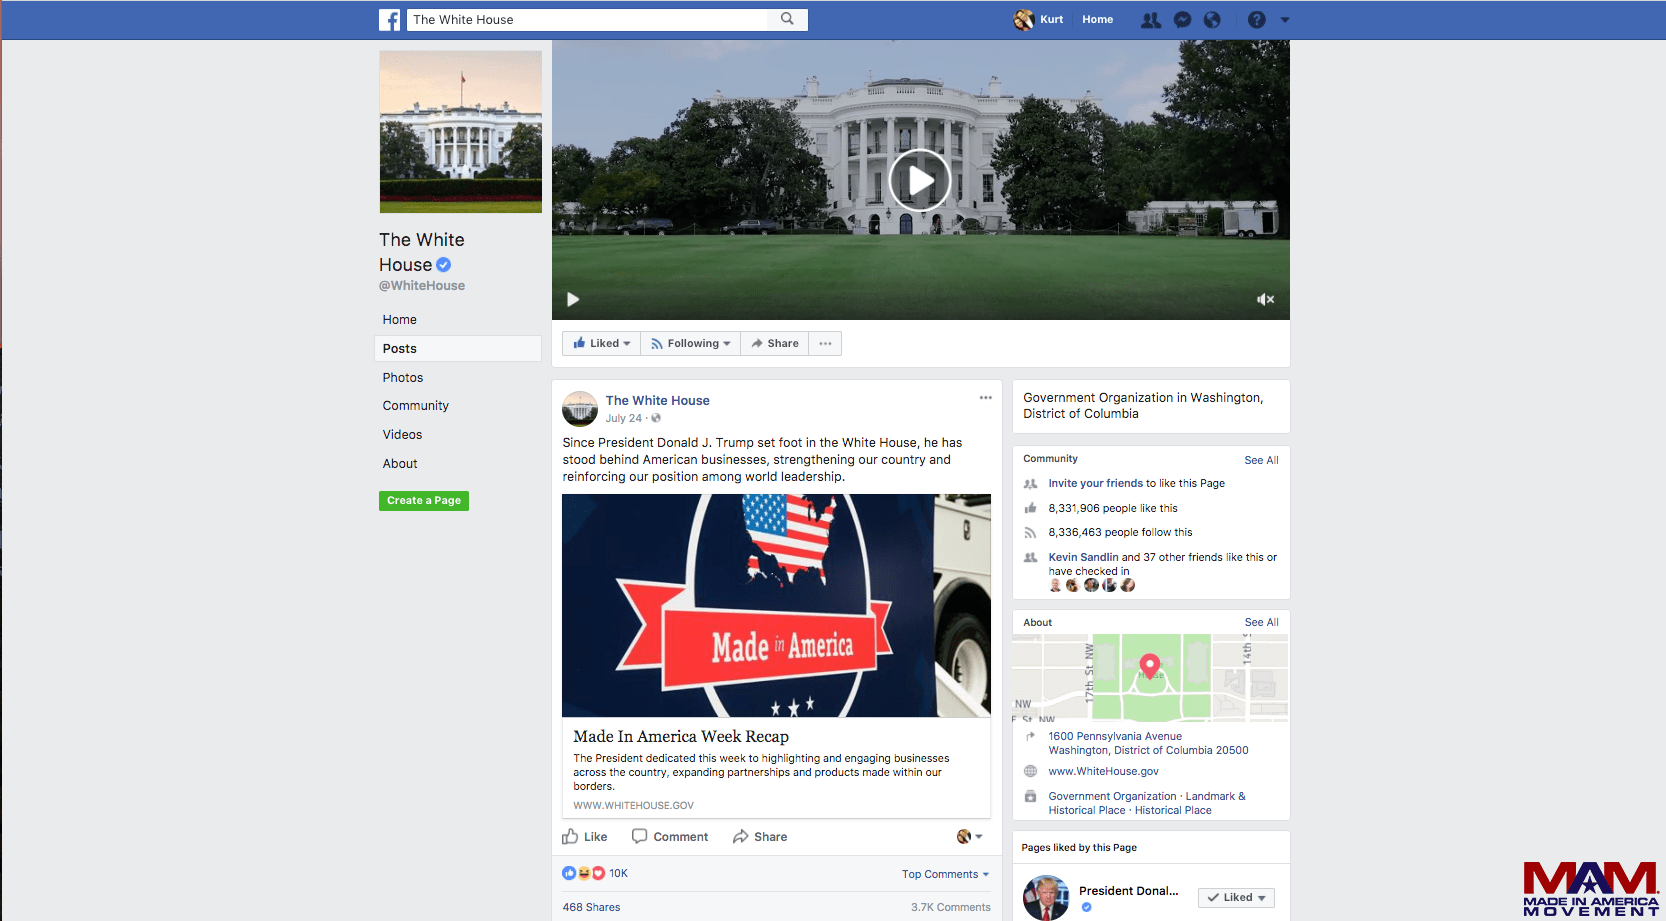 White House Facebook post on Made in America Week 8a